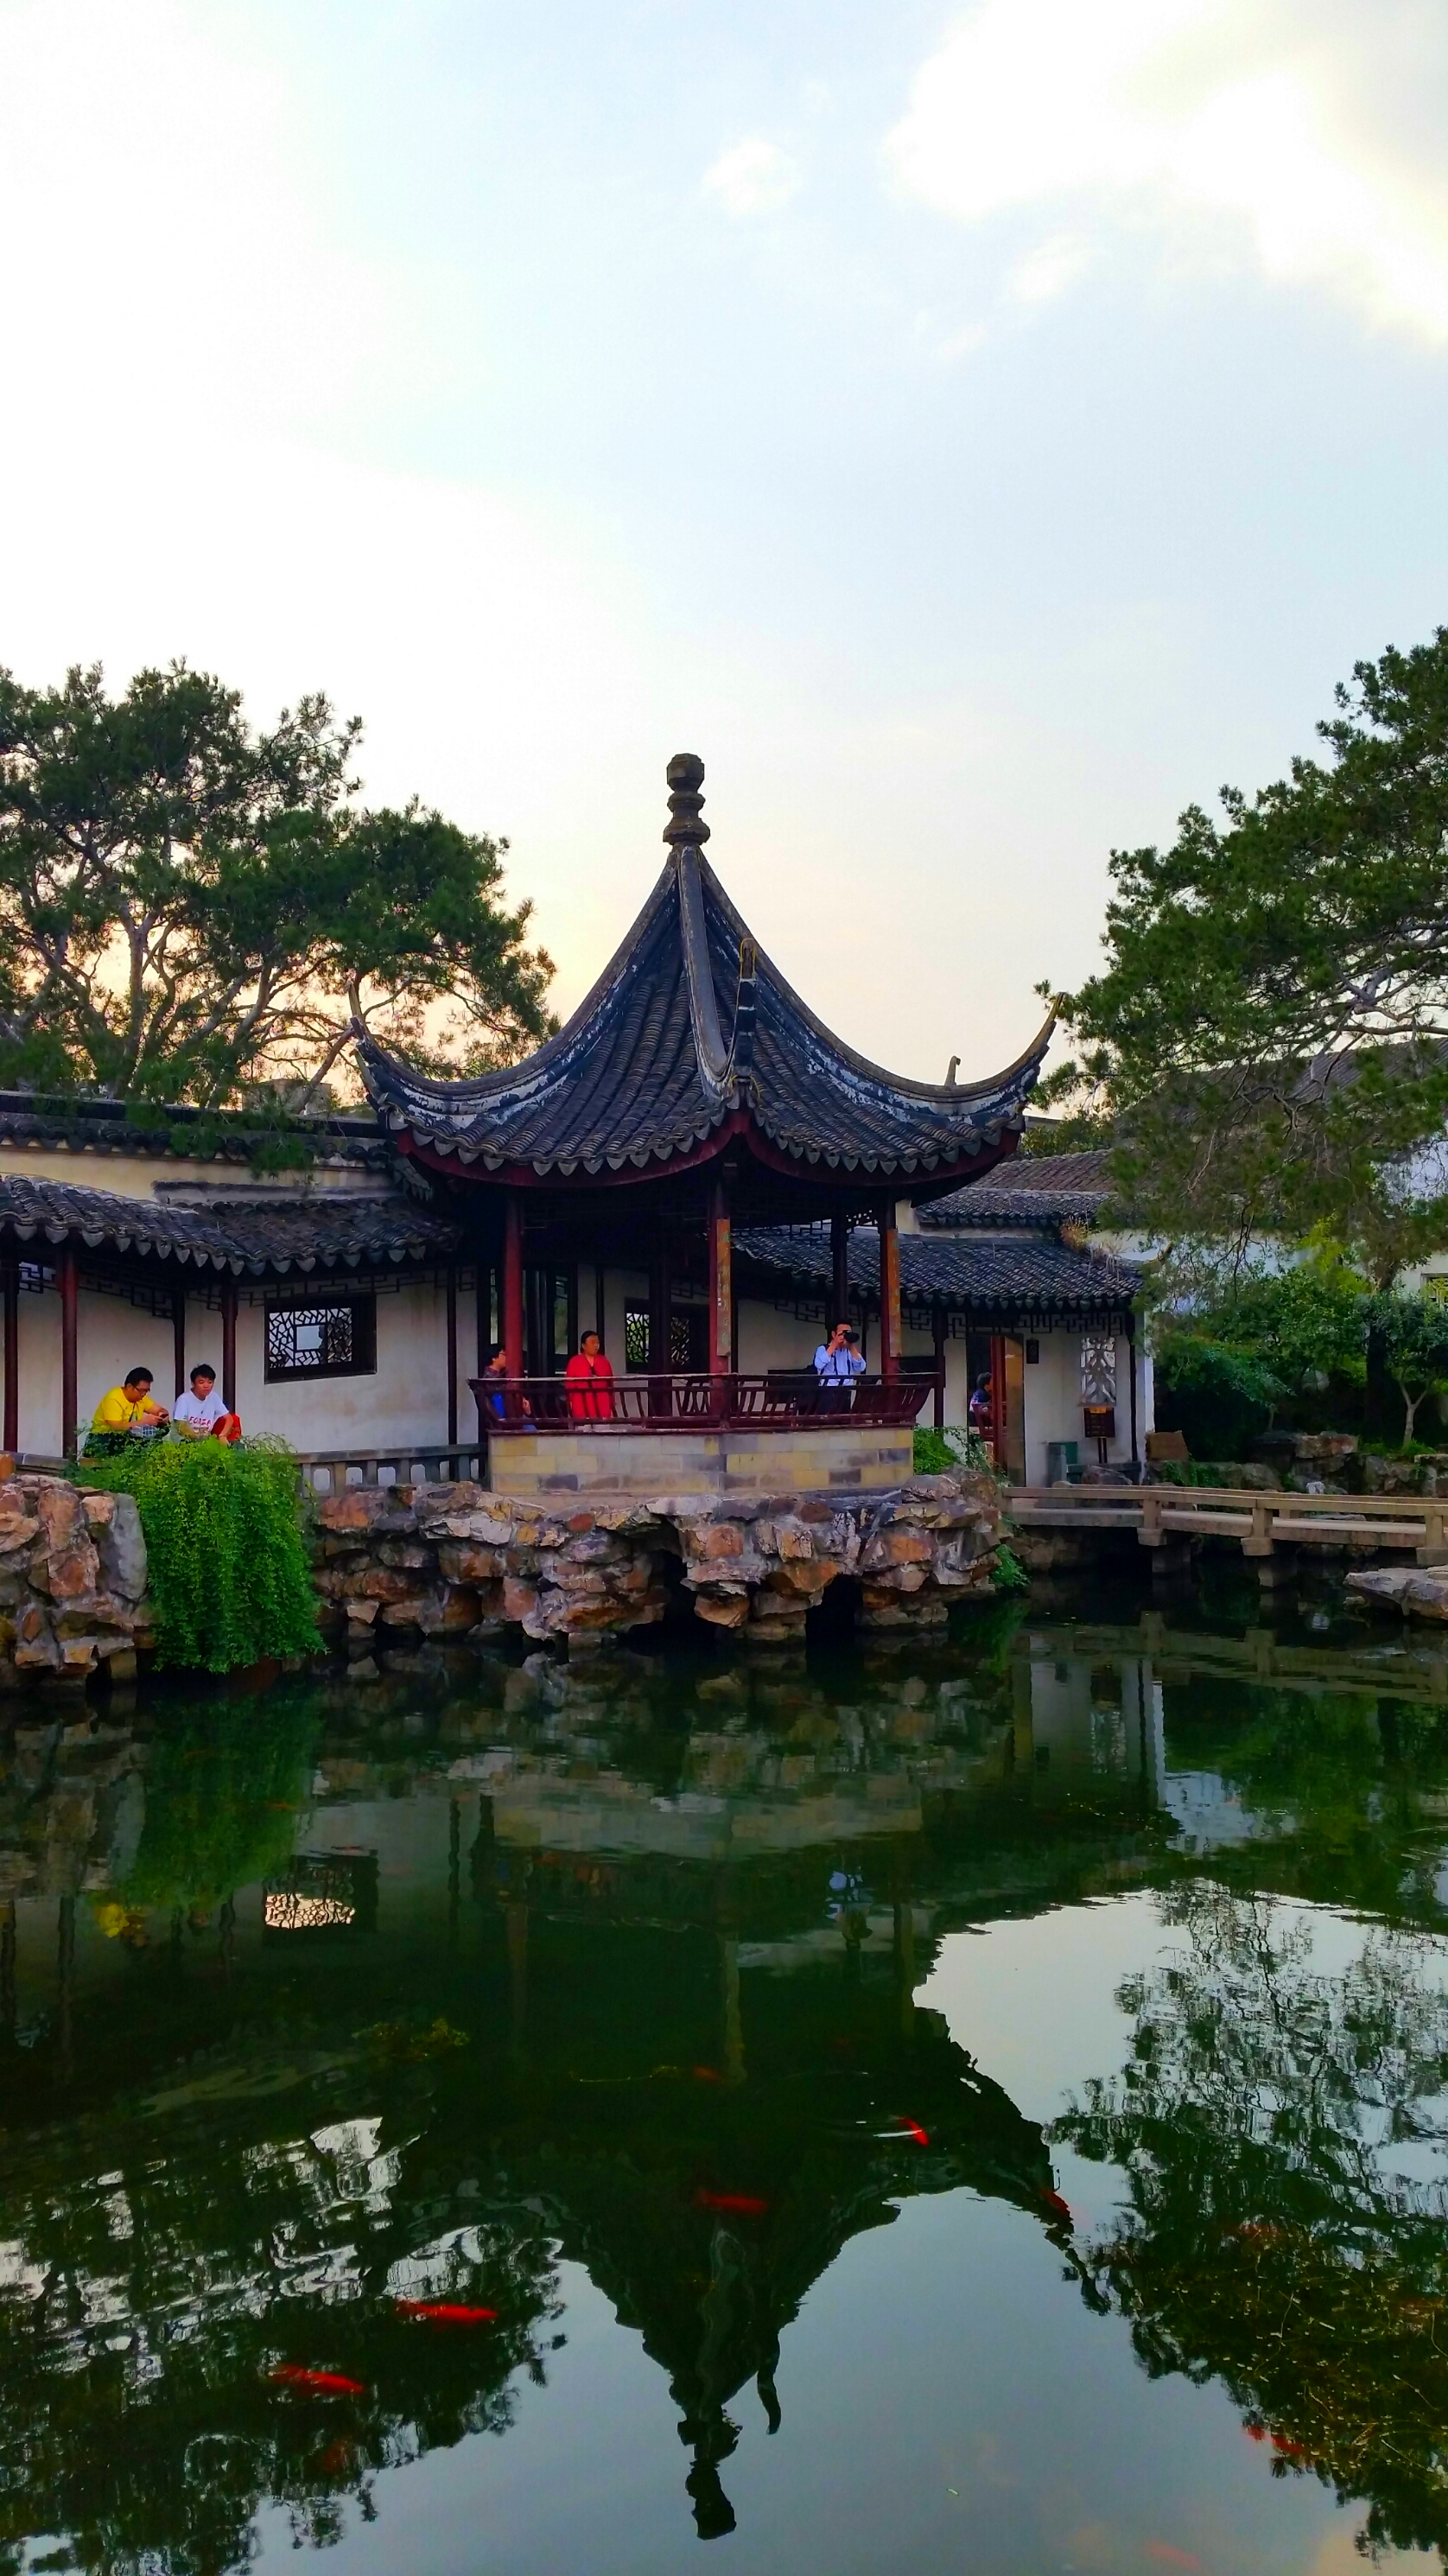 Classical Gardens of Suzhou - China